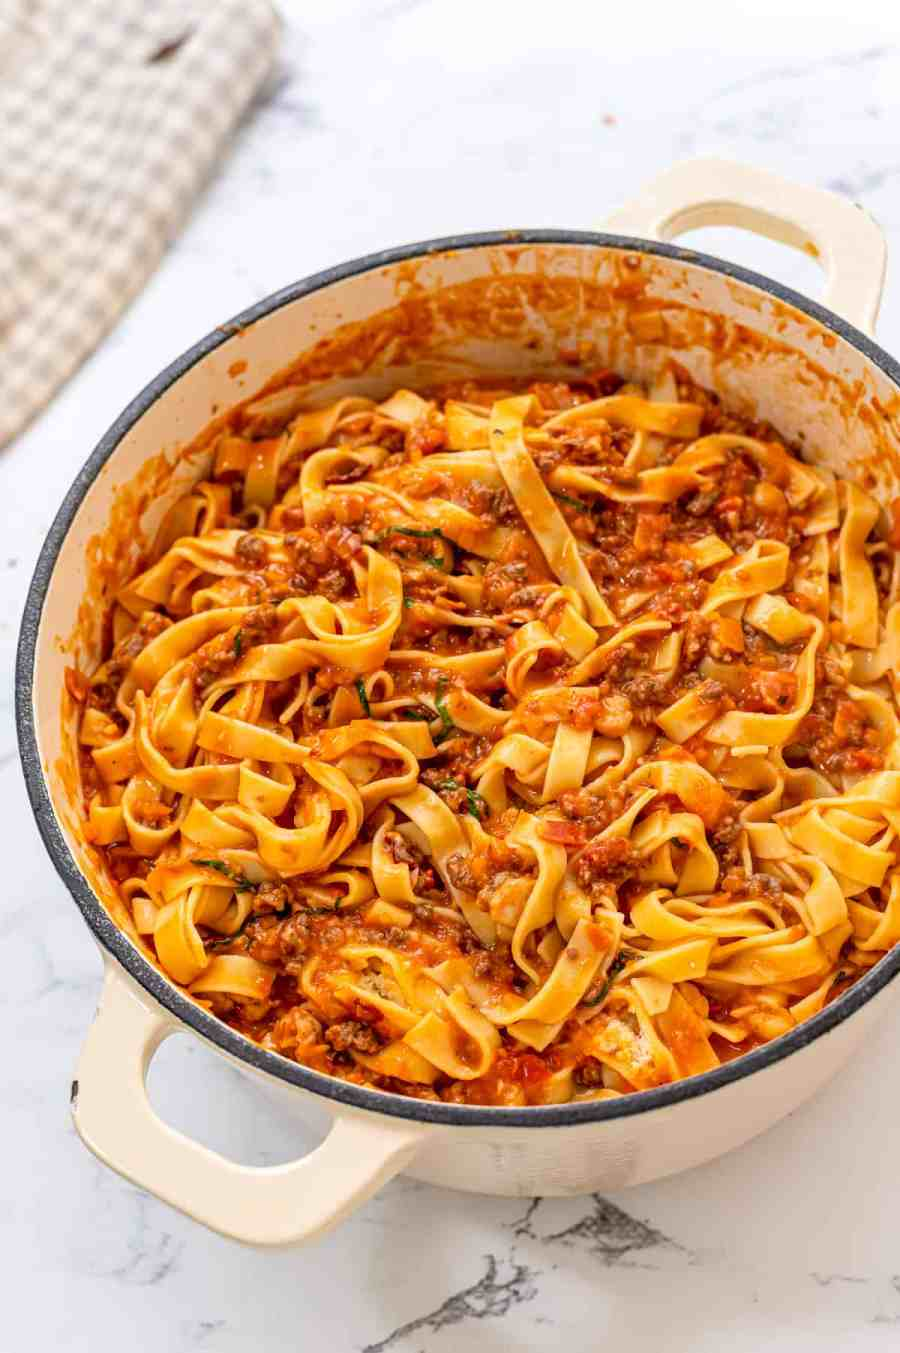 Dutch Oven pan with pasta bolognese.